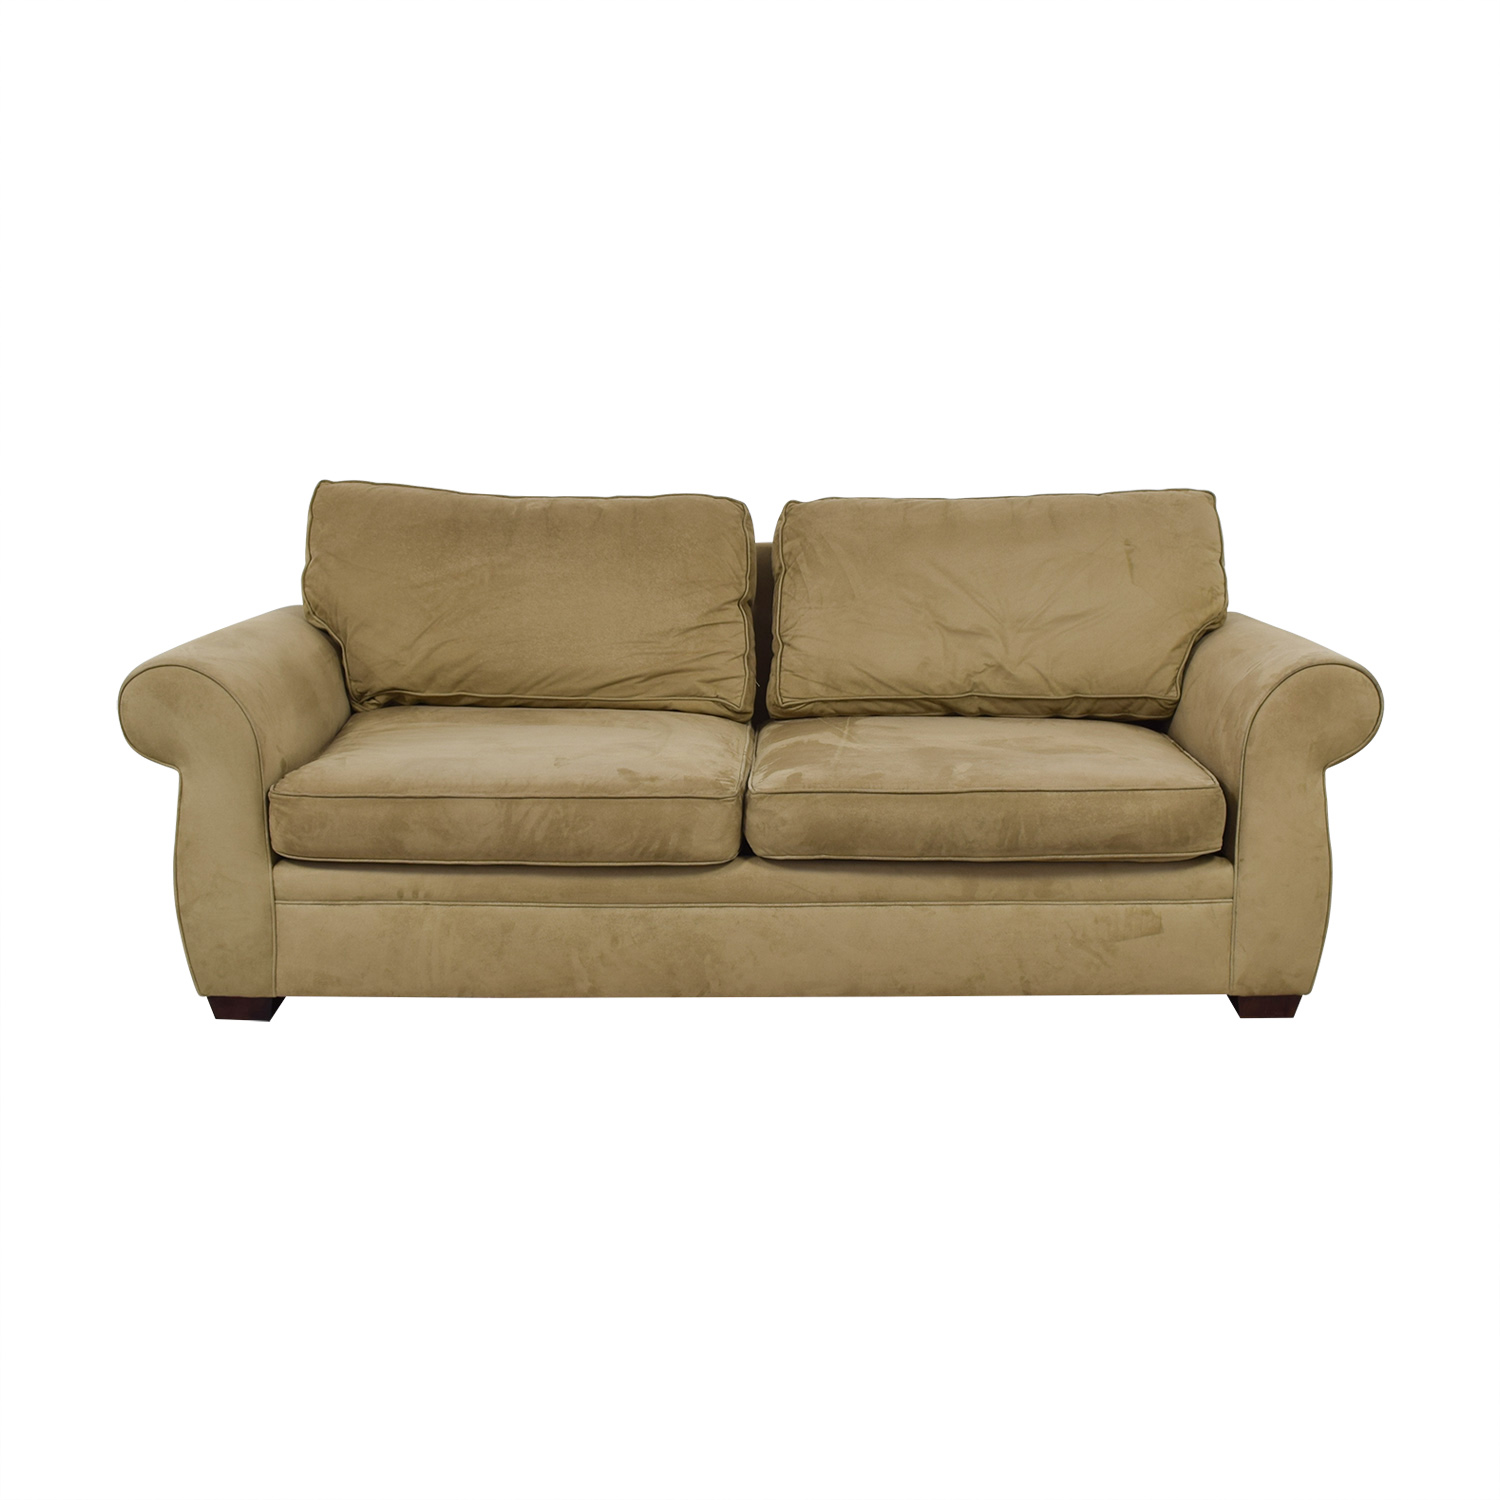 Pottery Barn Pottery Barn Beige Two-Cushion Roll Arm Sofa discount